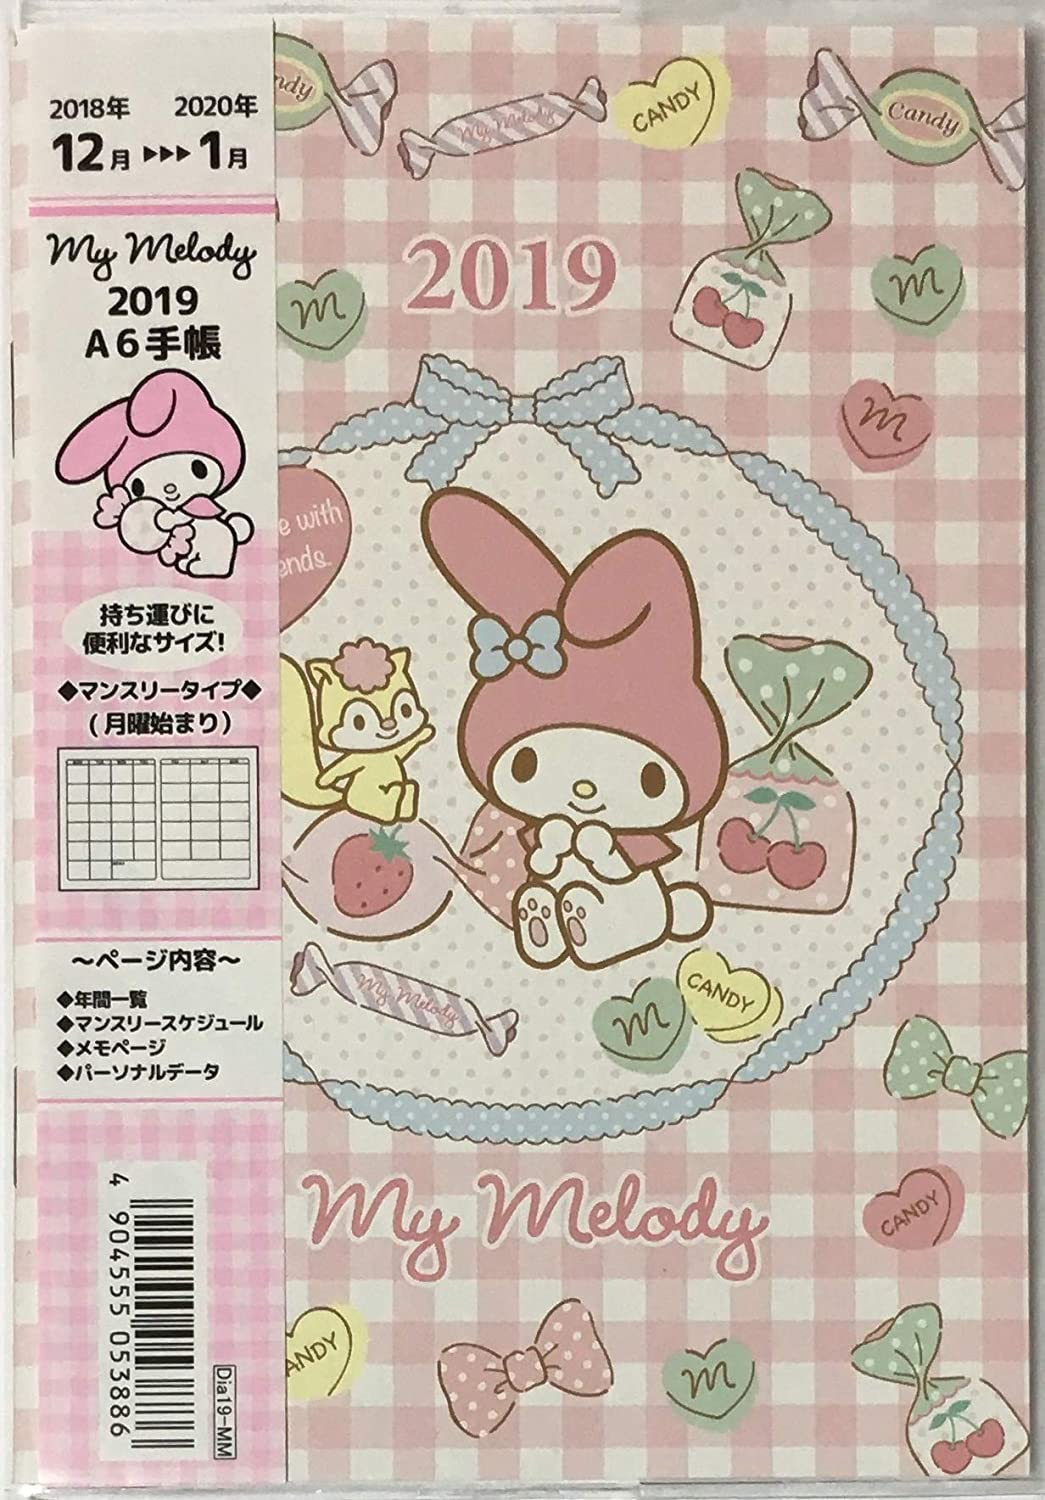 Amazon.com : Sanrio My Melody Japanese Schedule Calender ...